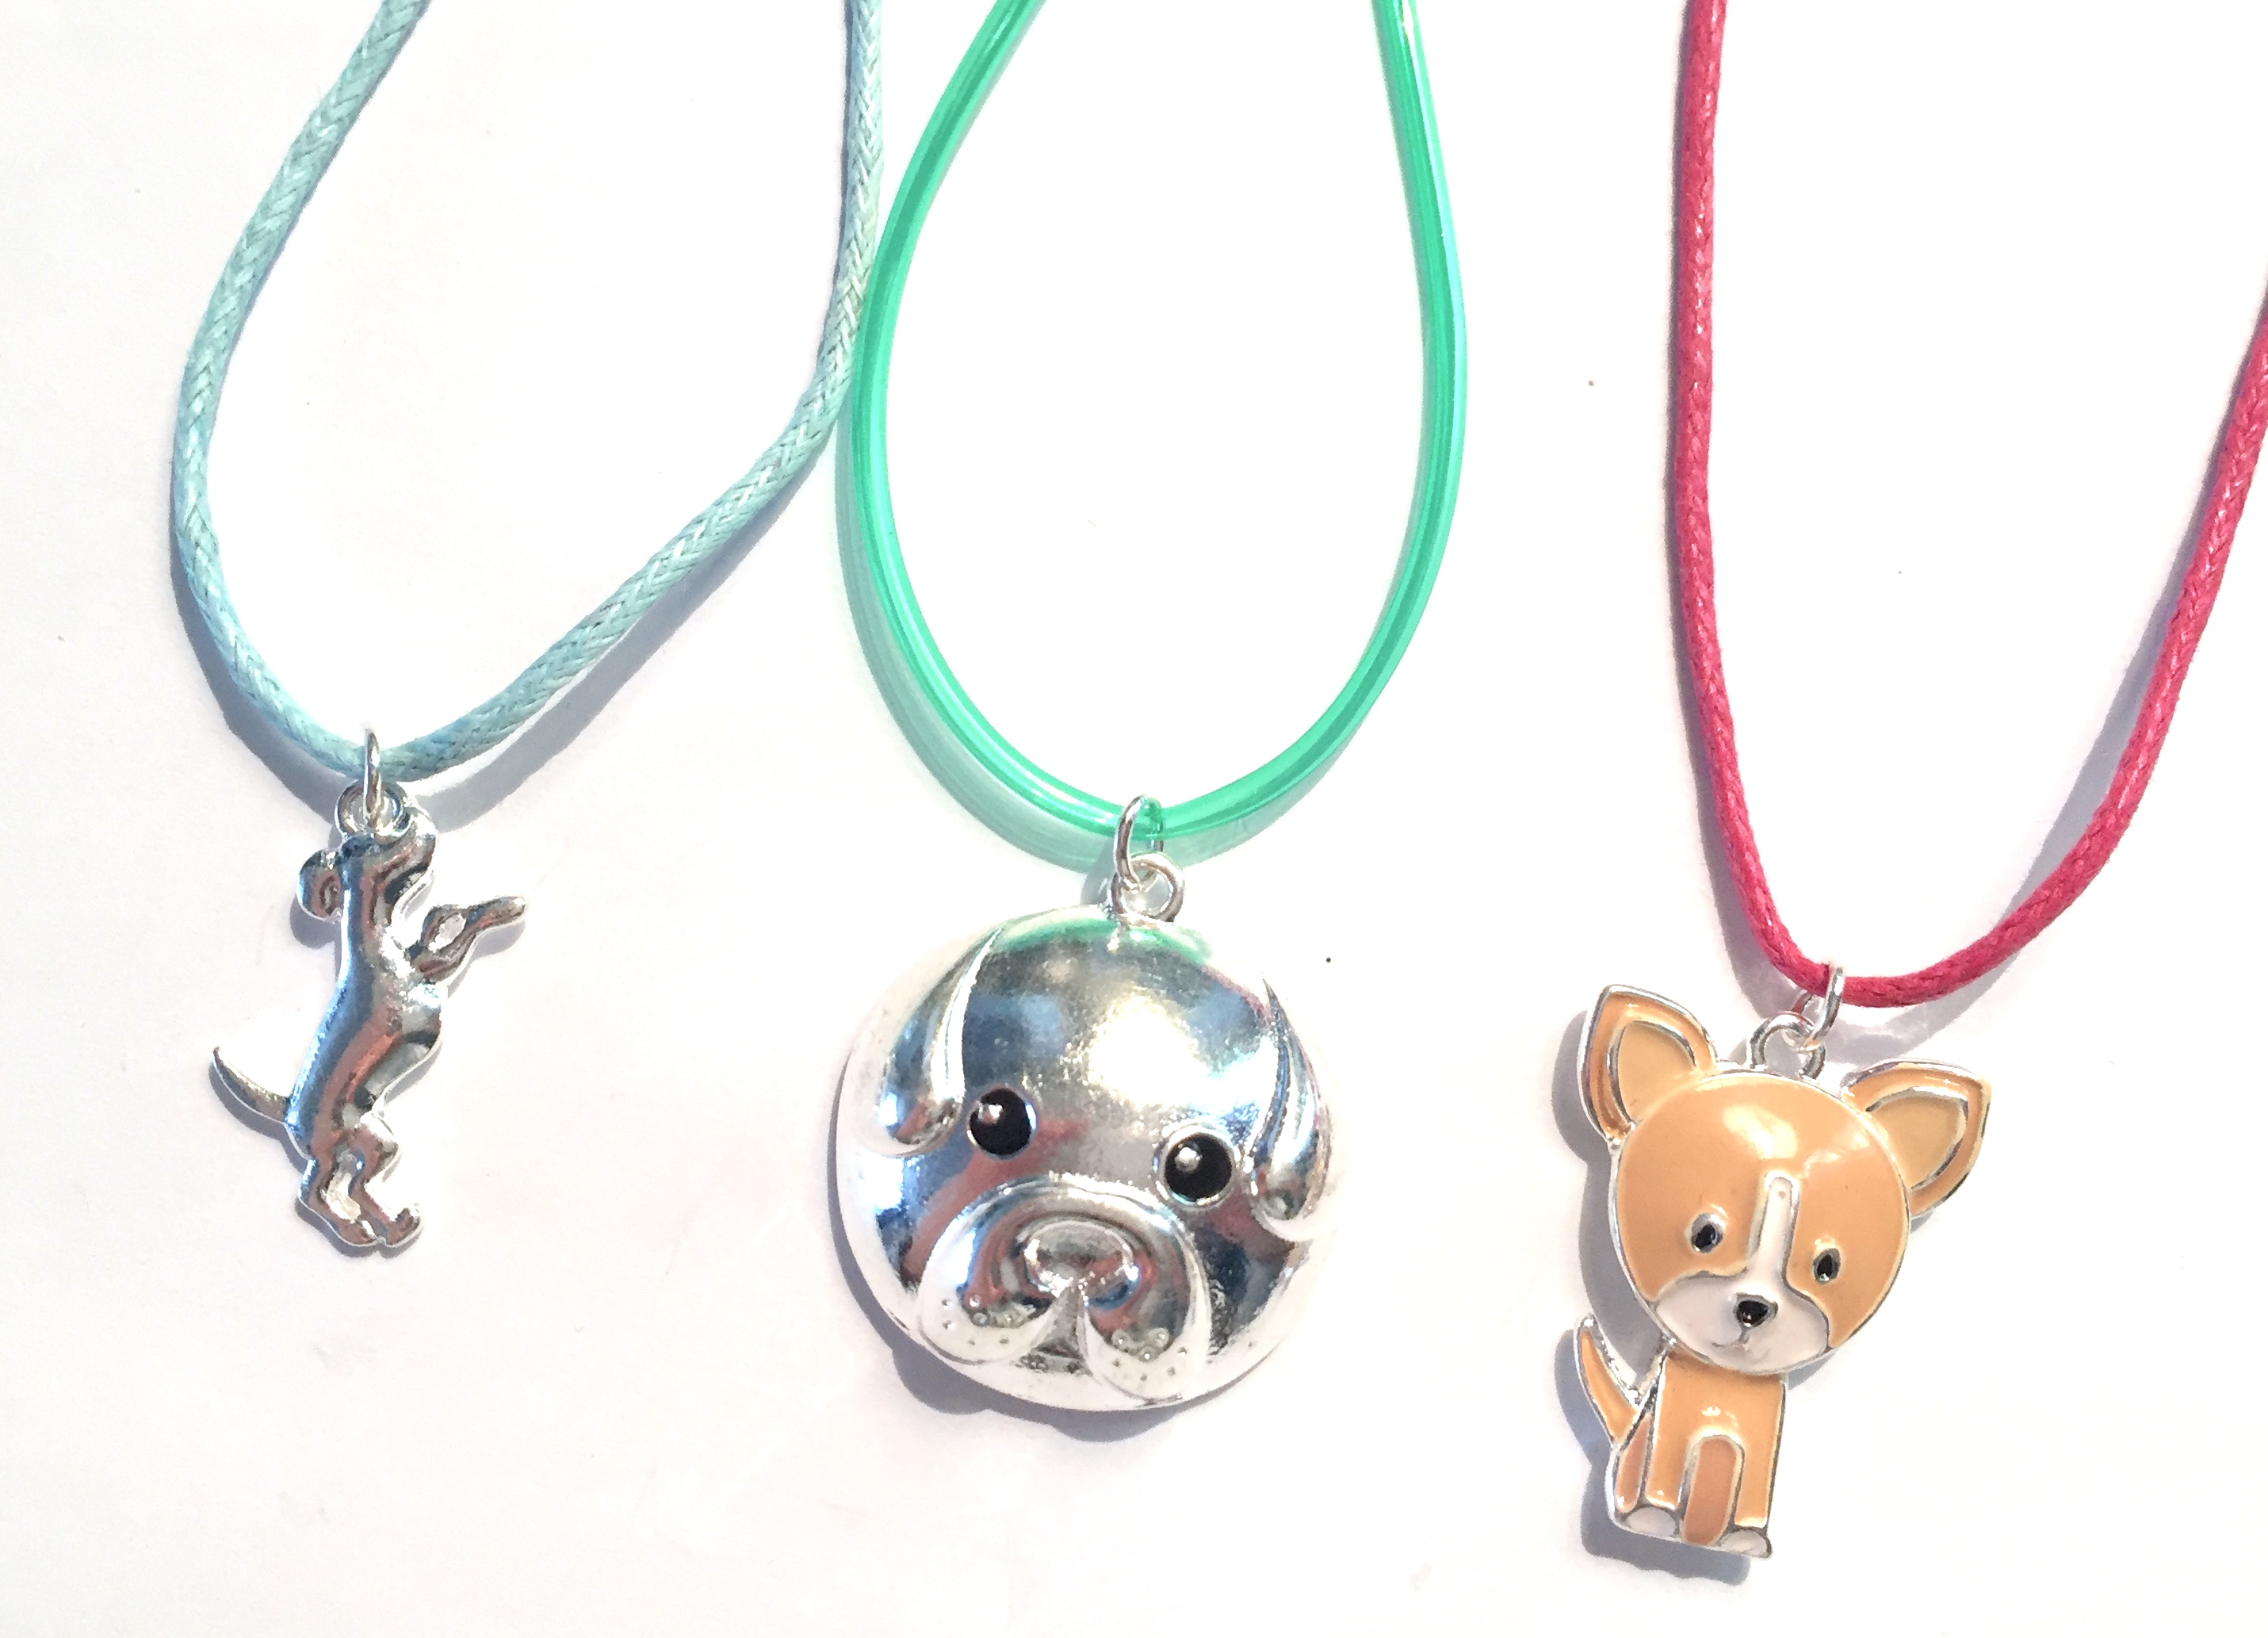 Corded Puppy Necklaces